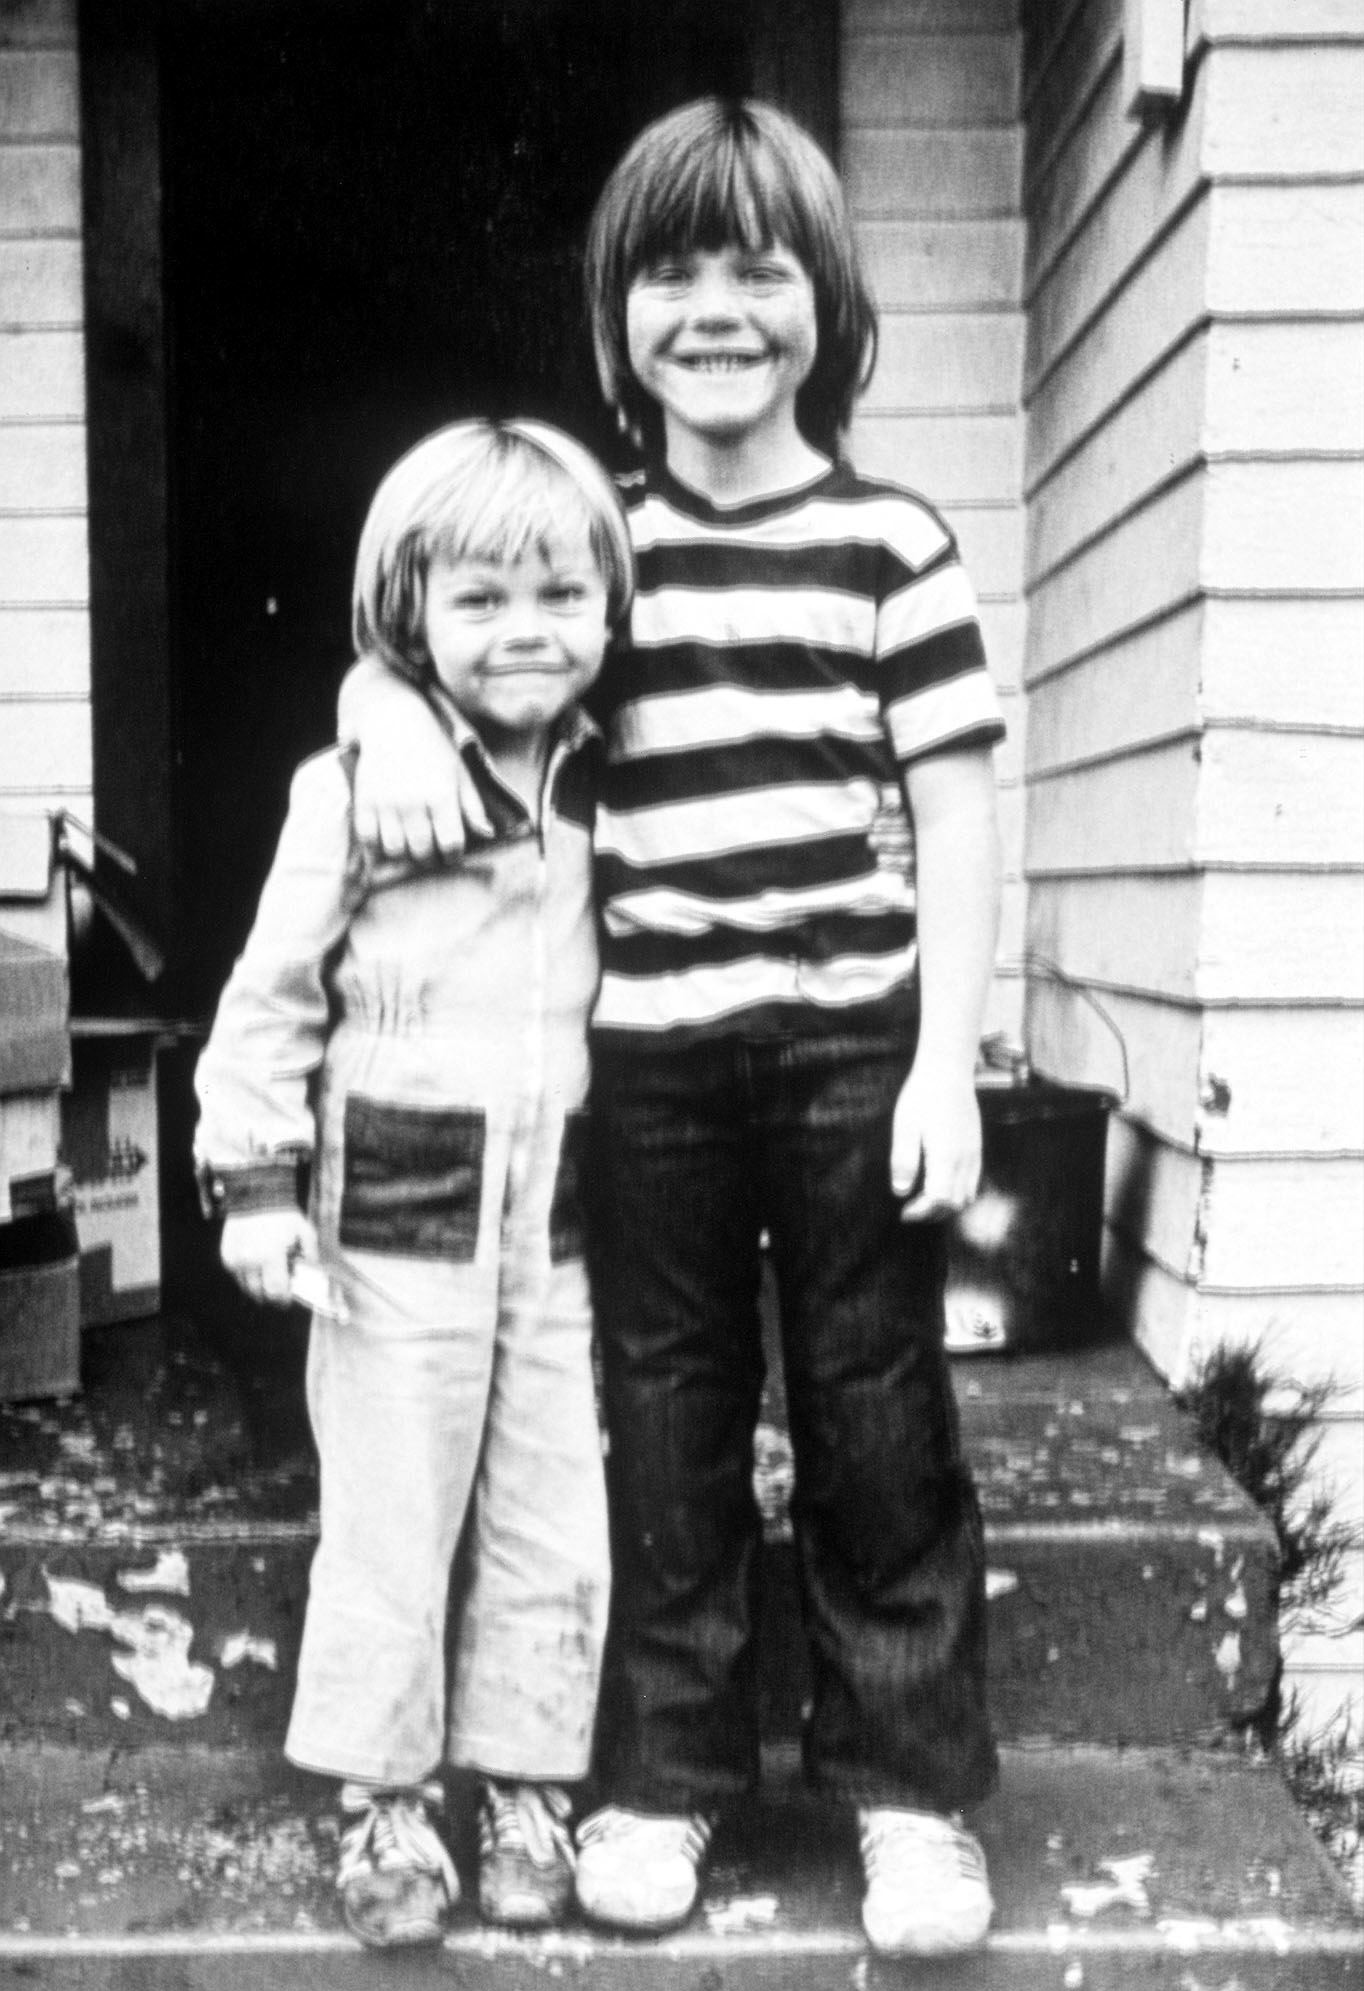 From left: Leonardo DiCaprio and his stepbrother, Adam Ferrer, in Los Angeles in 1978.